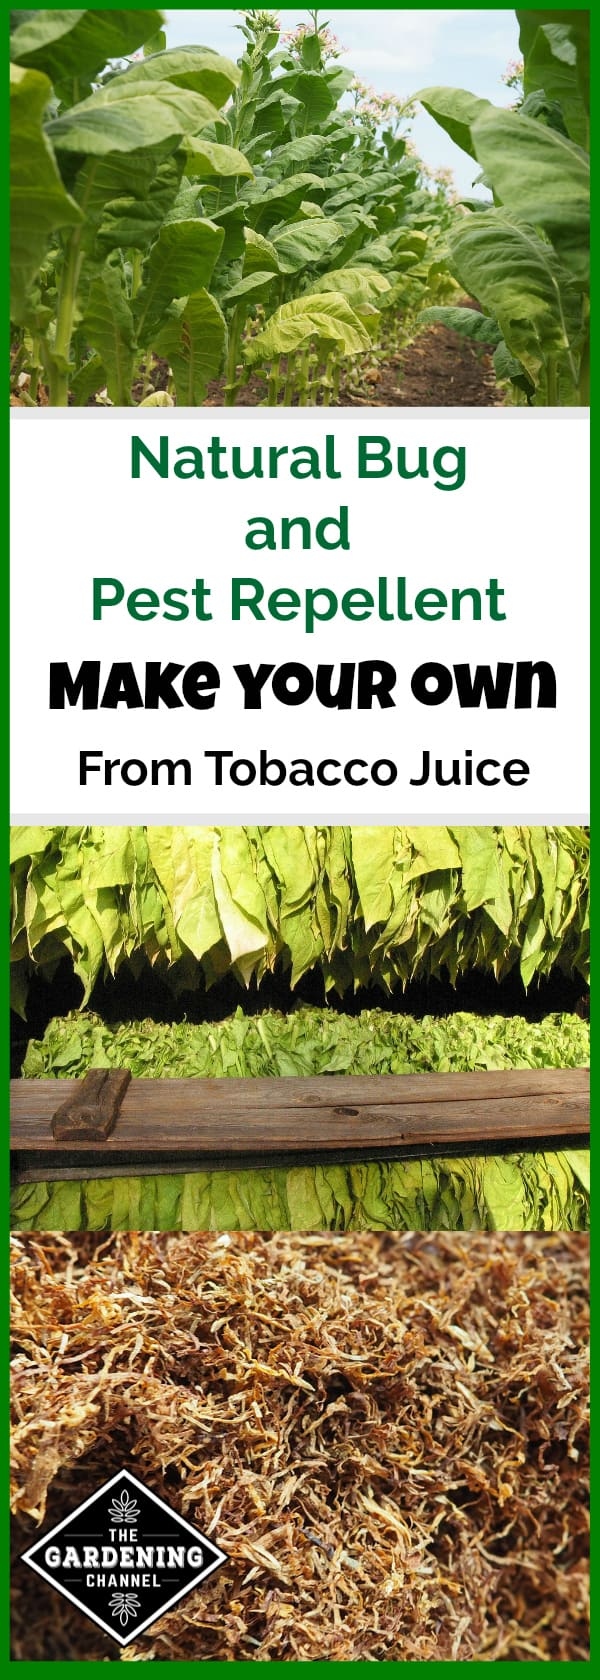 How To Make Natural Tobacco Juice Bug And Pest Repellent